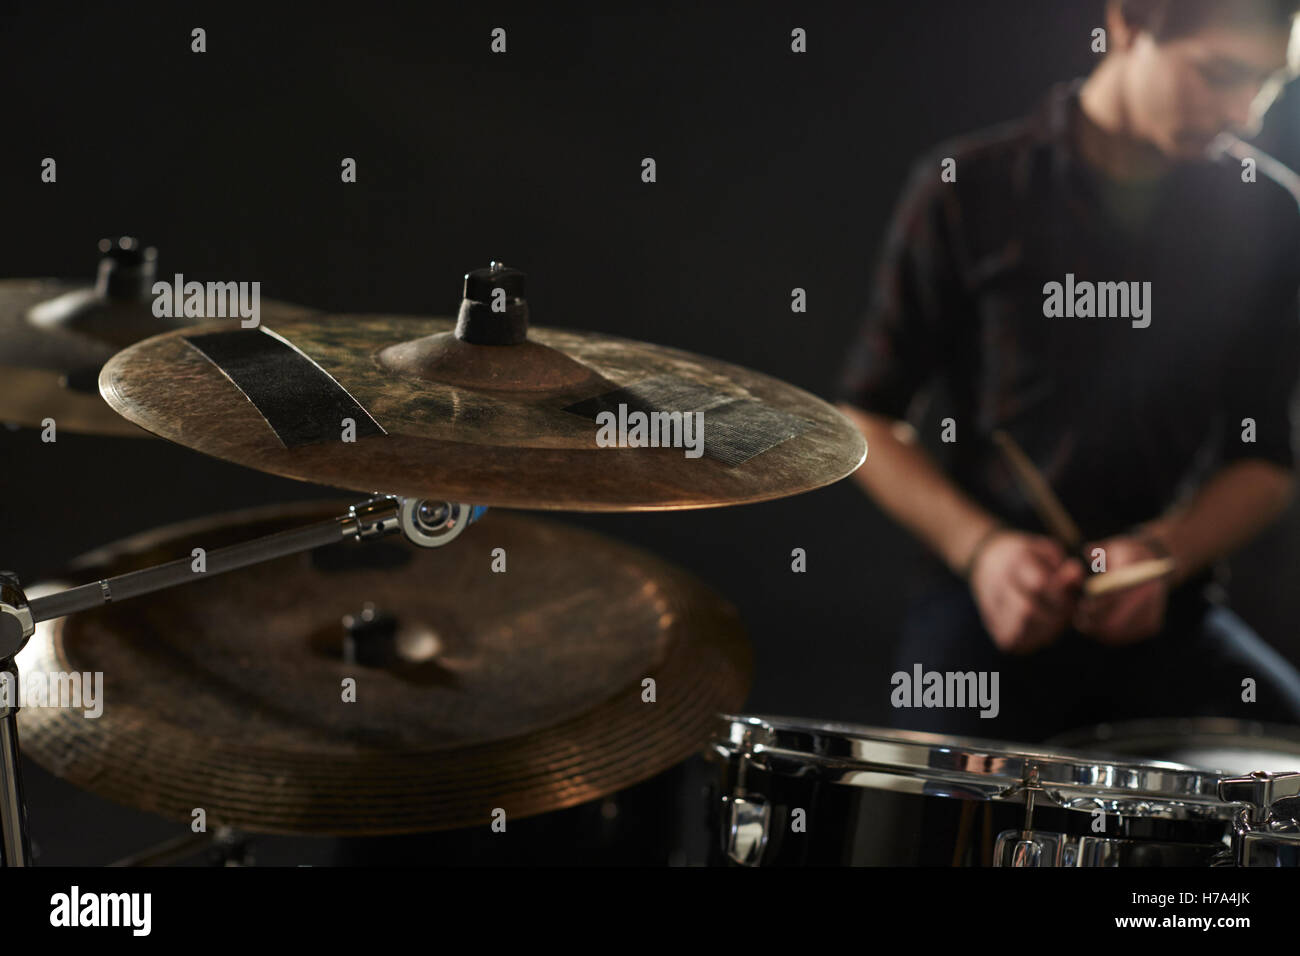 Hi Hat Cymbals Stock Photos Images Alamy And White Diagram Of A Drum Set Including High Snare Close Up On Drummers Kit Image